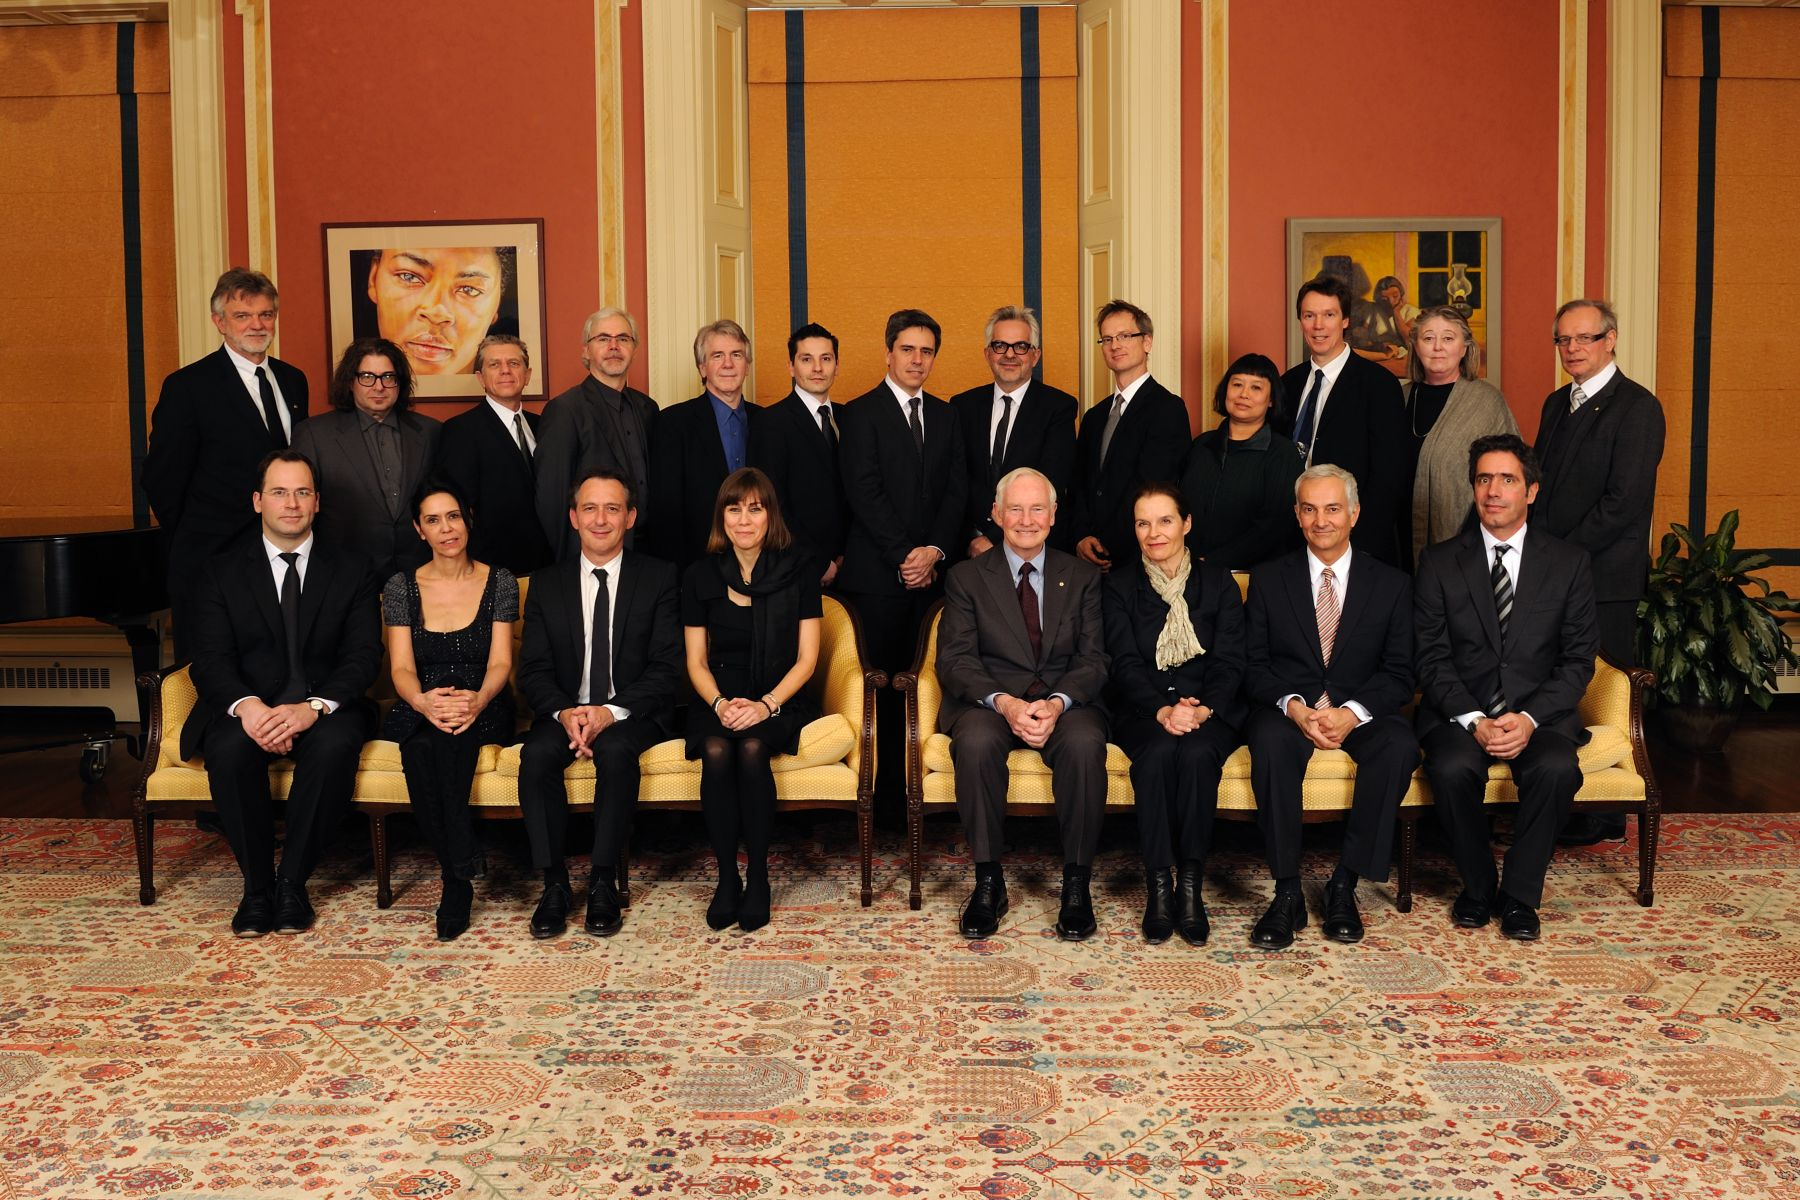 His Excellency honoured the laureates of the 2010 Governor General's Medals in Architecture during a ceremony at Rideau Hall.